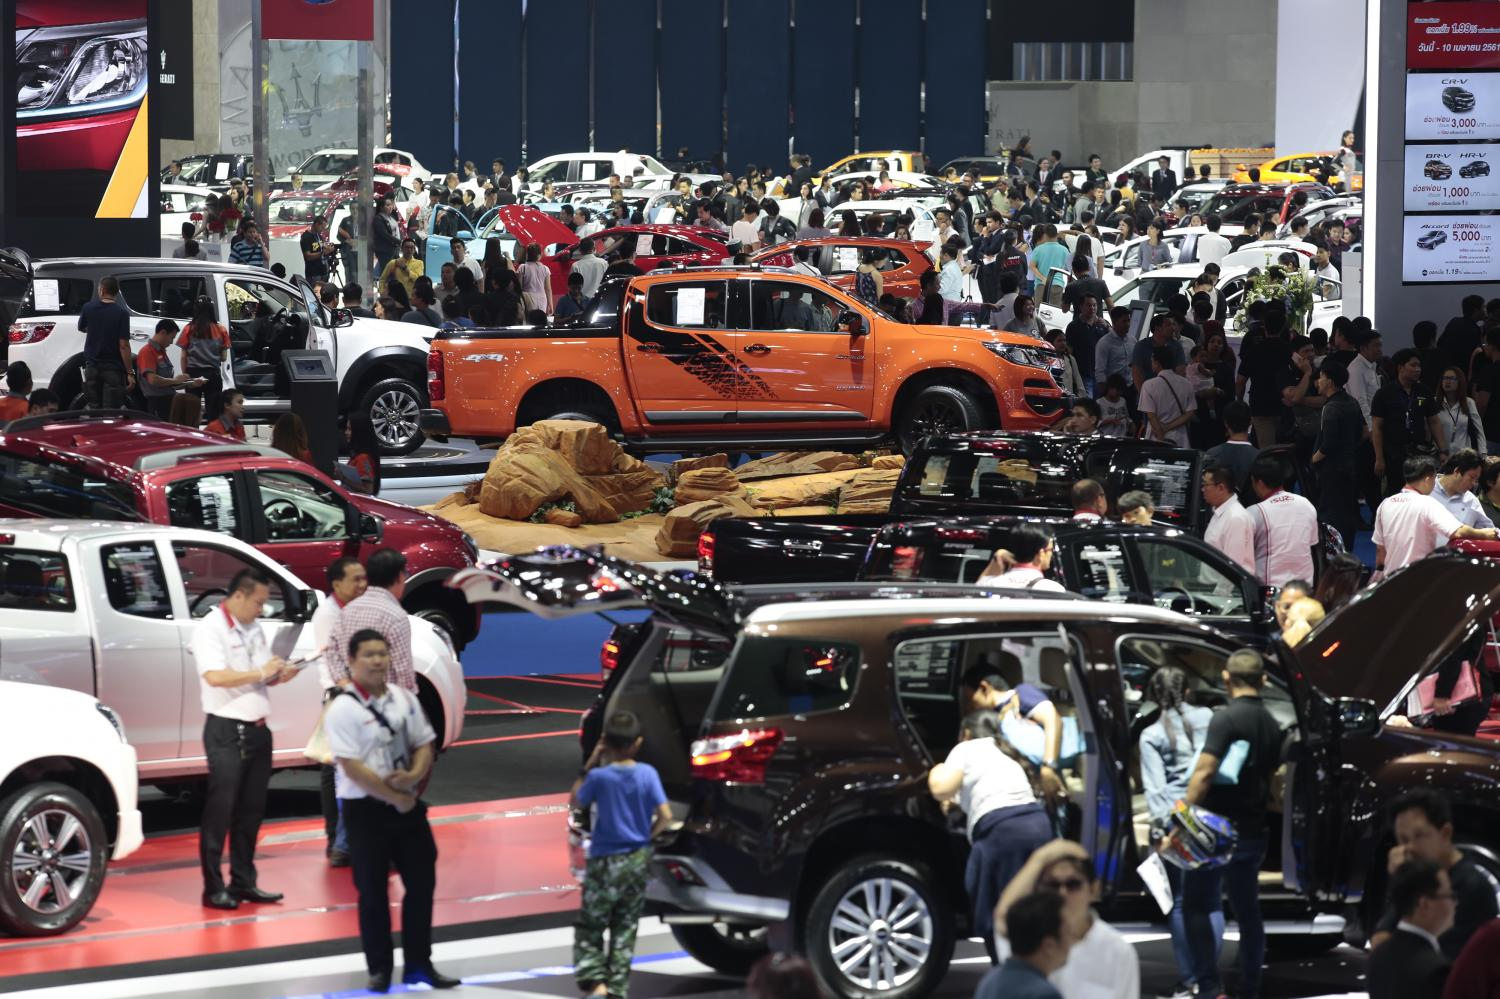 Thailand's car market saw declines in June and July, attributed to tighter auto loan measures.(Photo by Patipat Janthong)